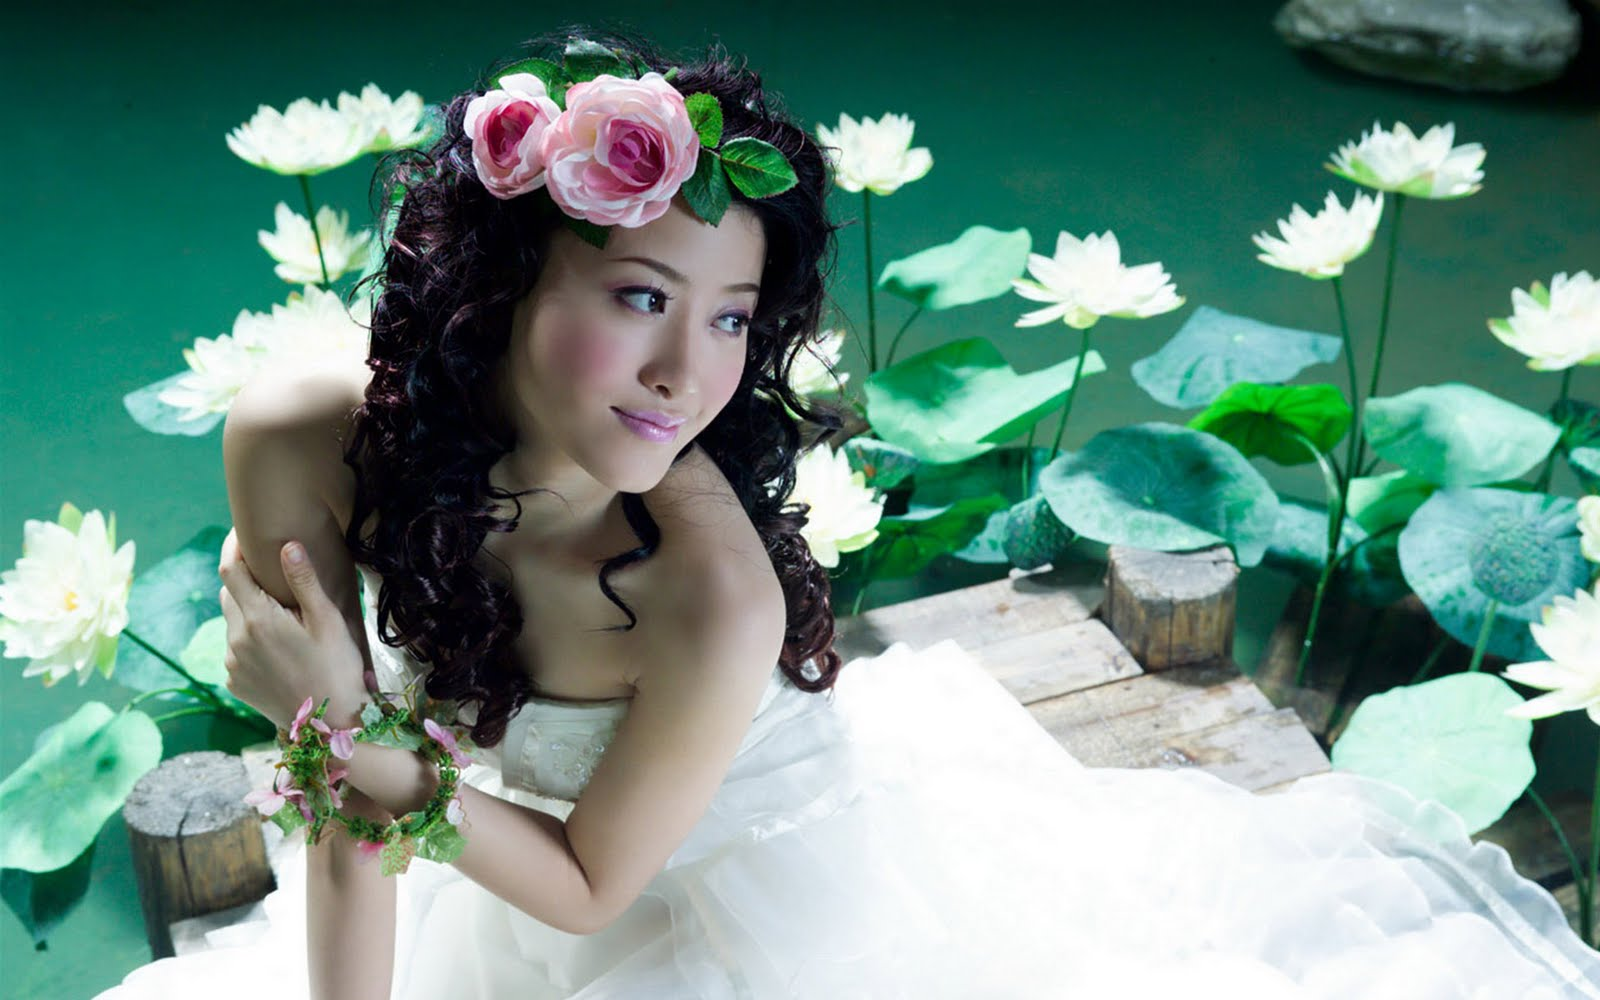 all image wallpapers: cute and beautiful girls wallpaper pack 5